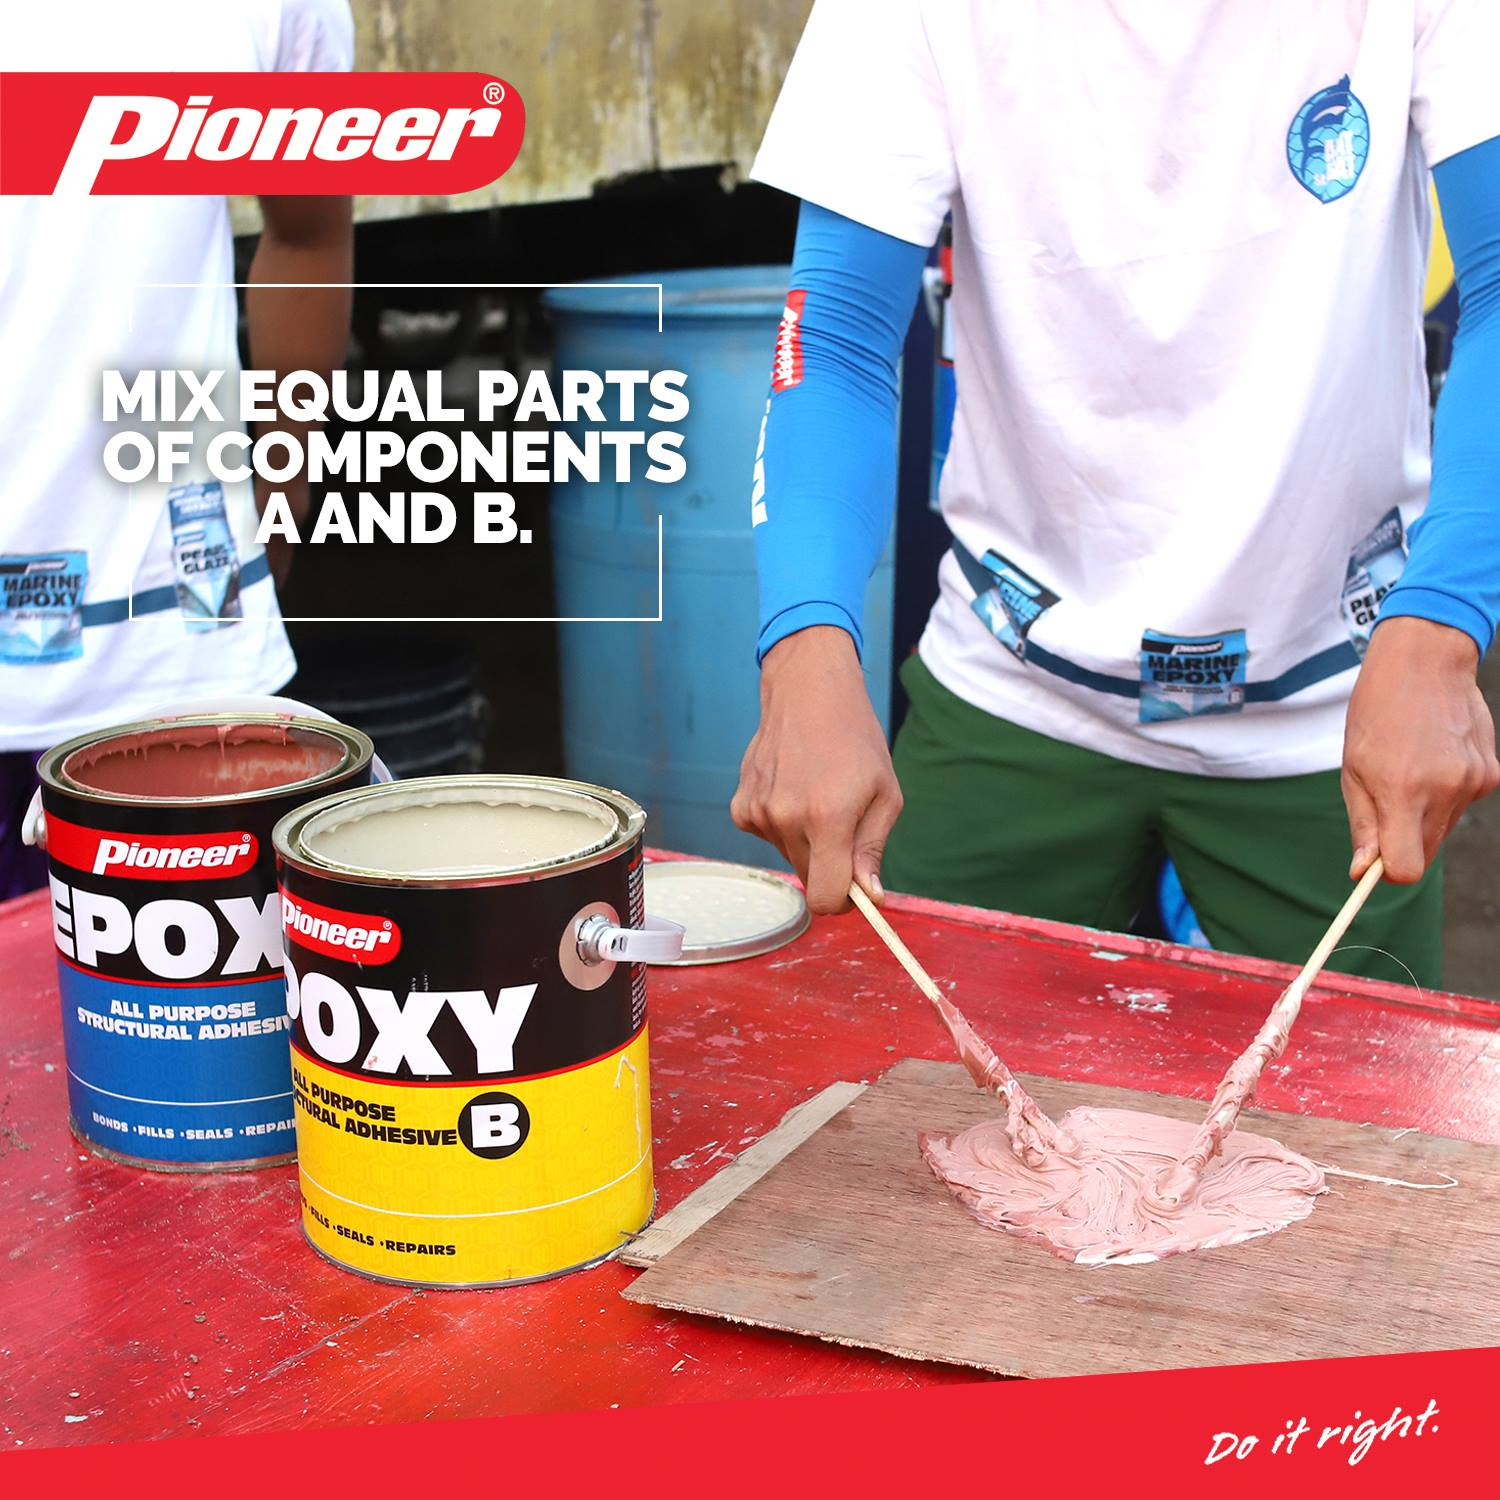 All-Purpose Epoxy